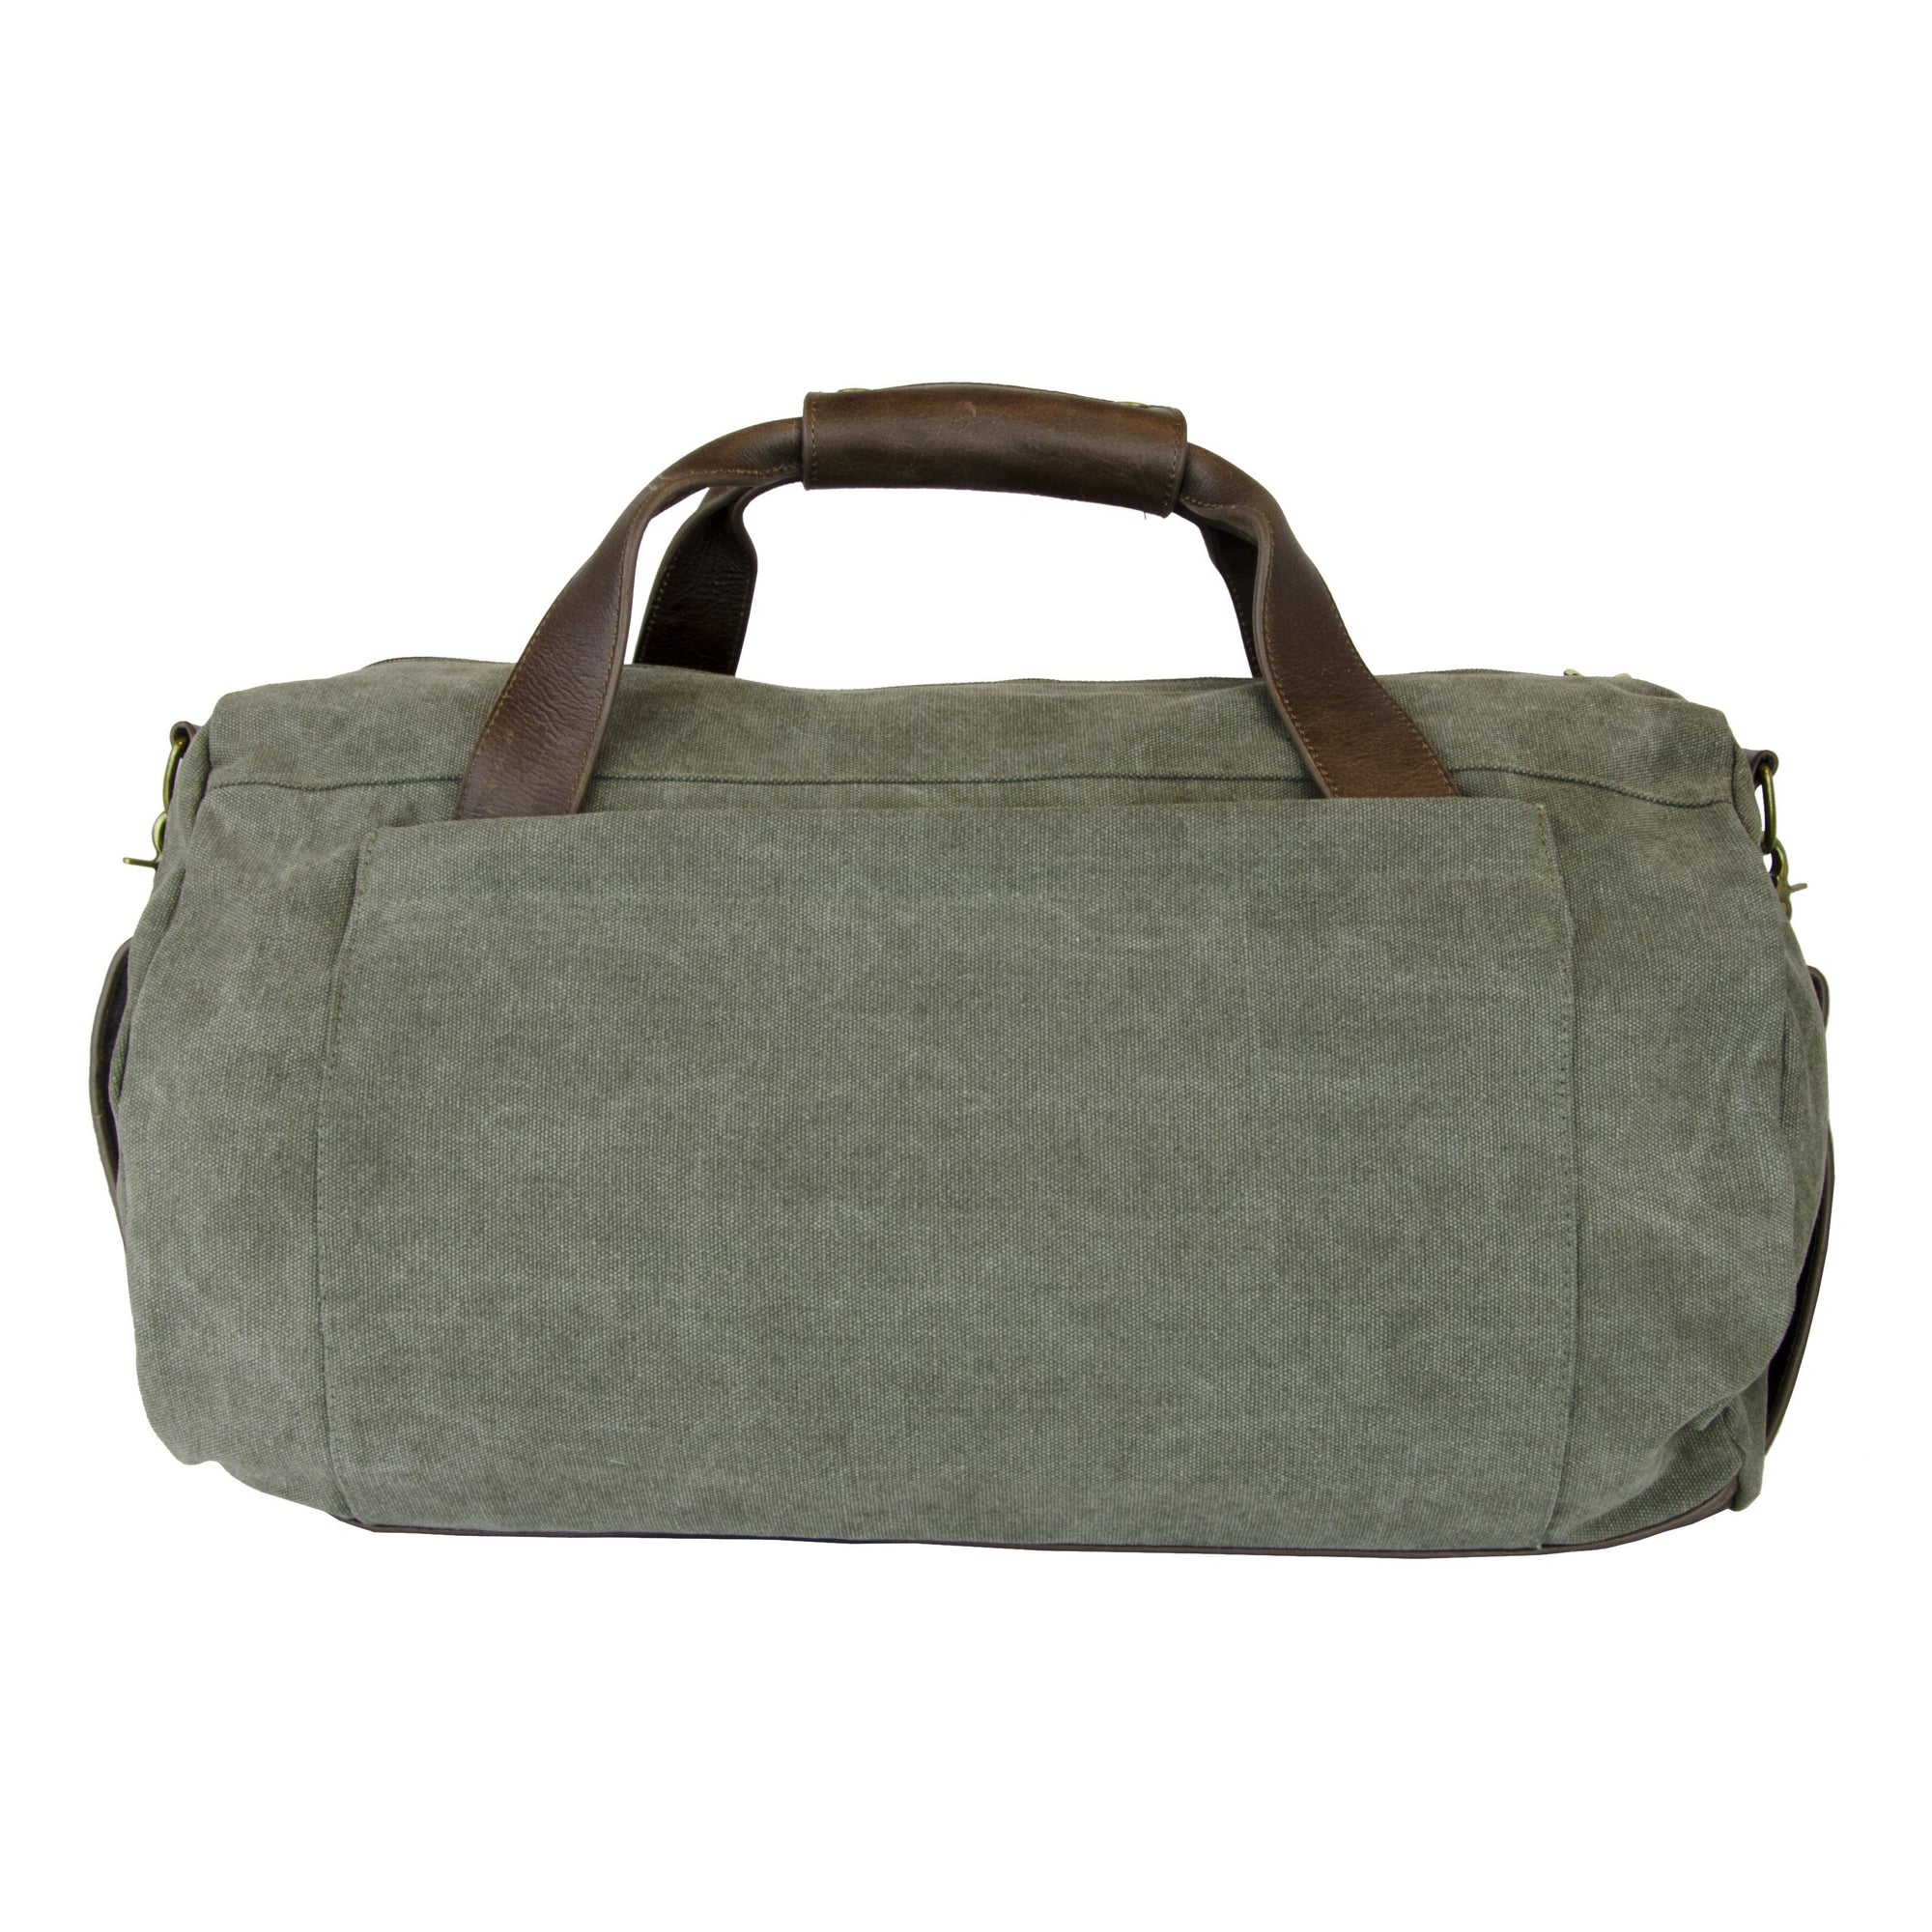 FIDIR » Canvas Duffle Bag - Travel Duffle Bag - Weekend Duffle Bag